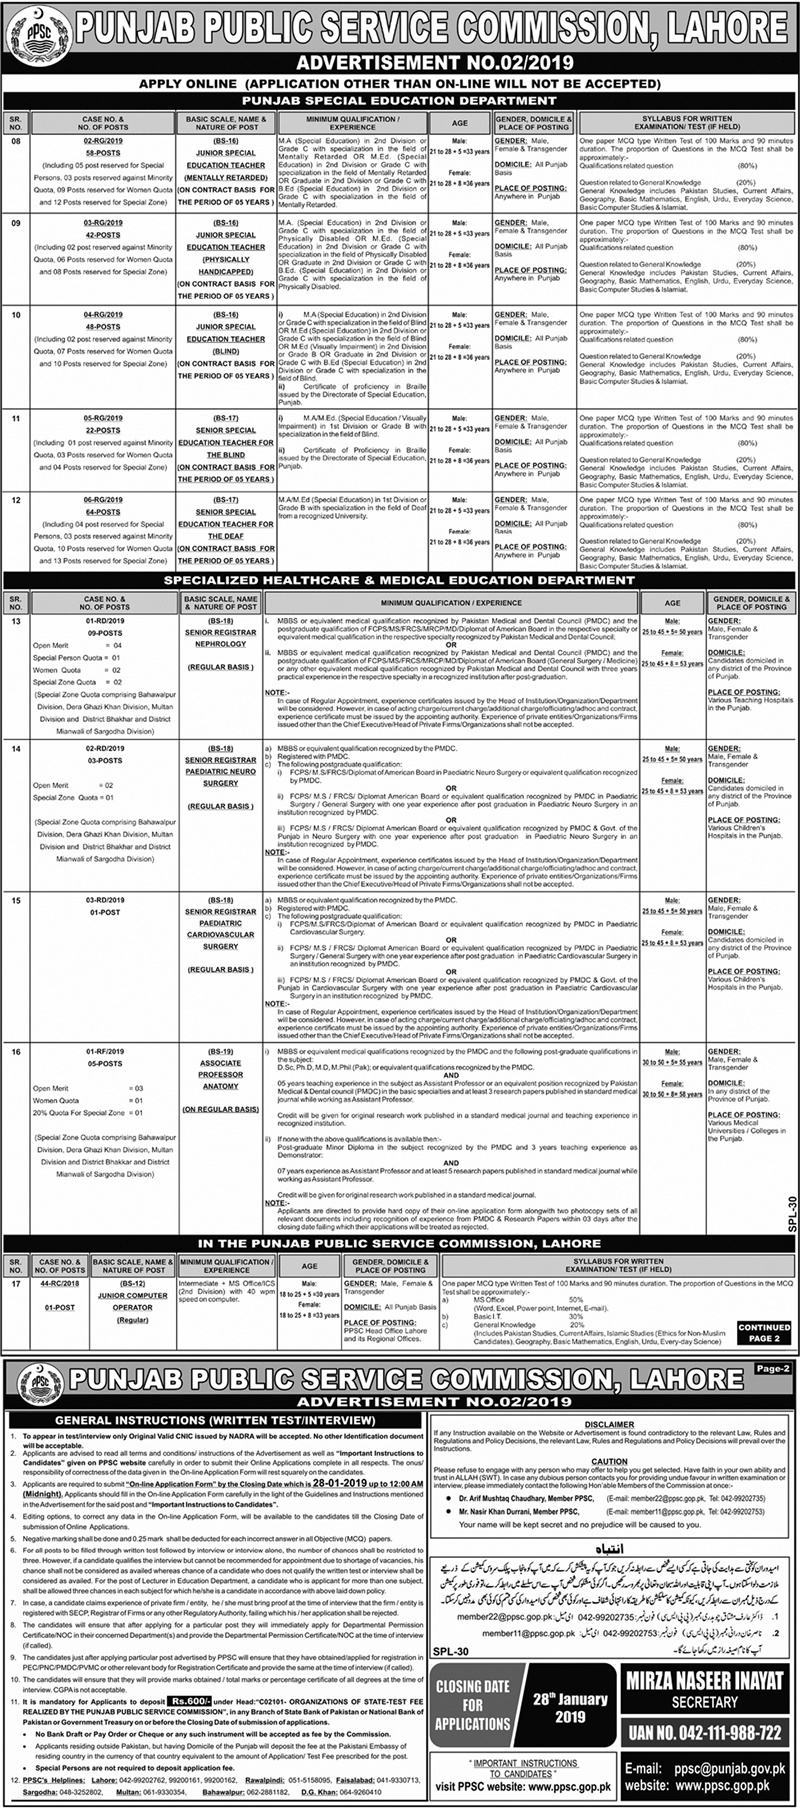 Punjab Special Education Department Teaching Jobs 2019 PPSC Apply Online Date